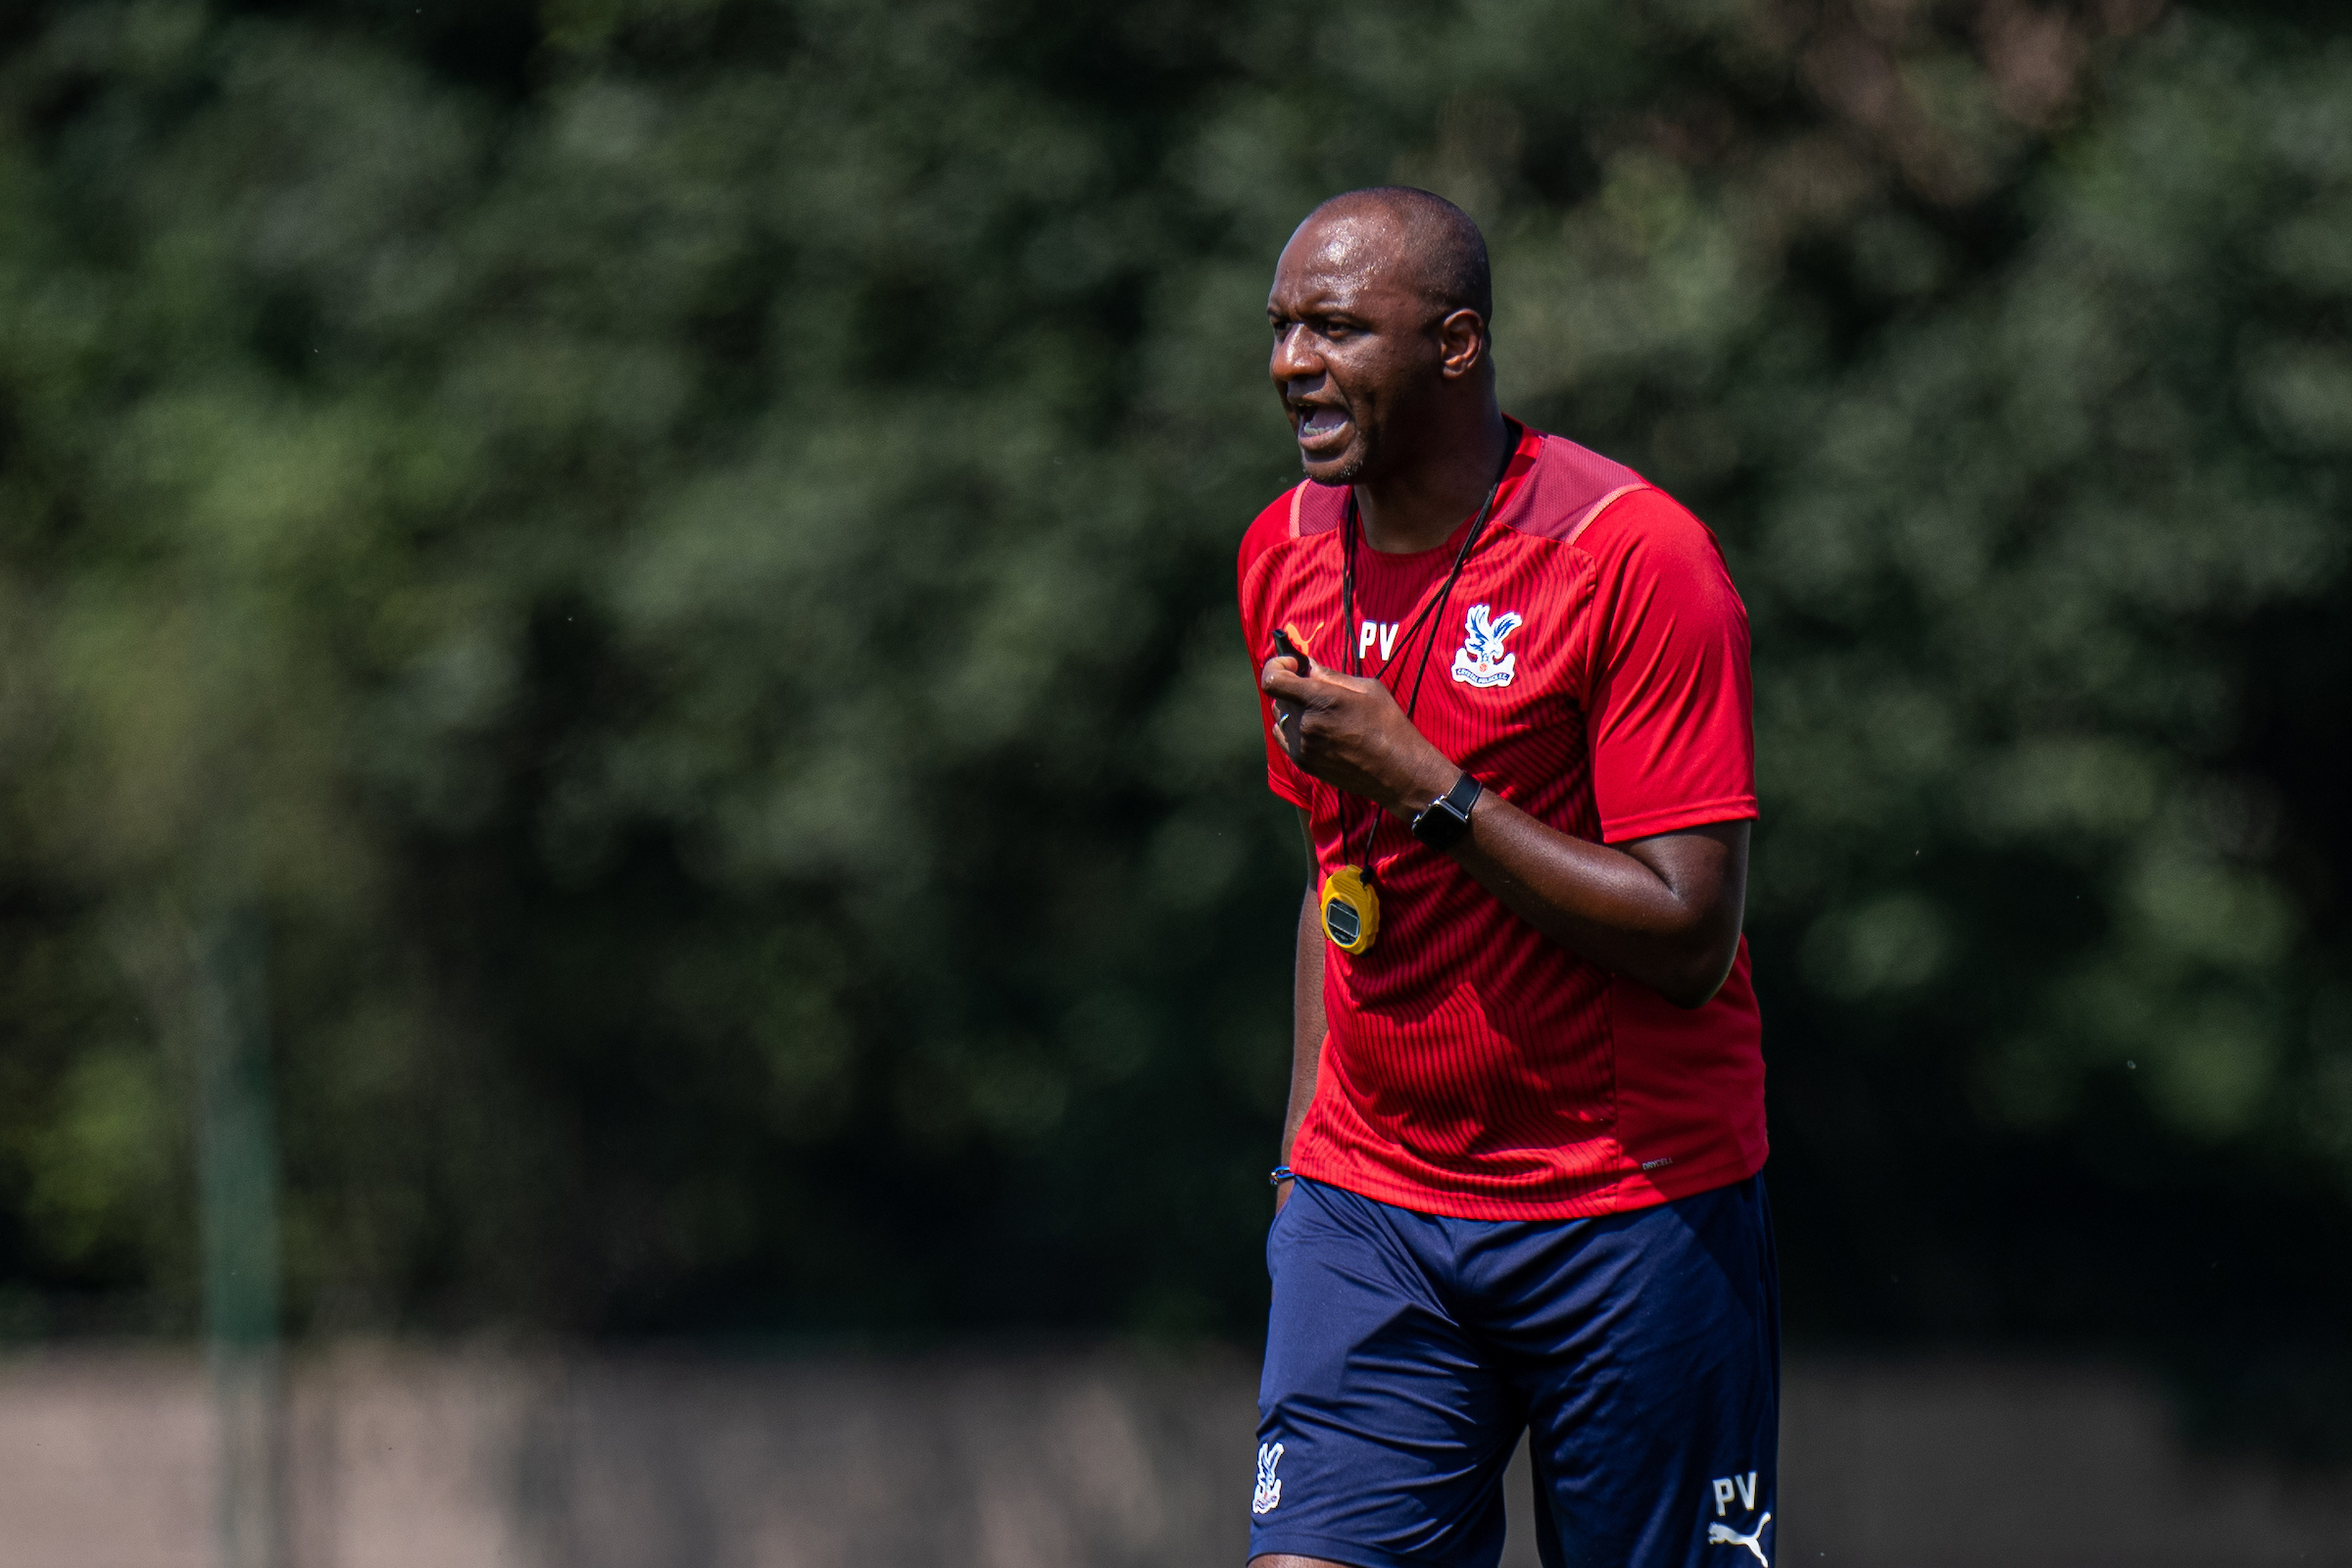 Palace Preview: Vieira's Eagles continue pre-season preparations at Ipswich